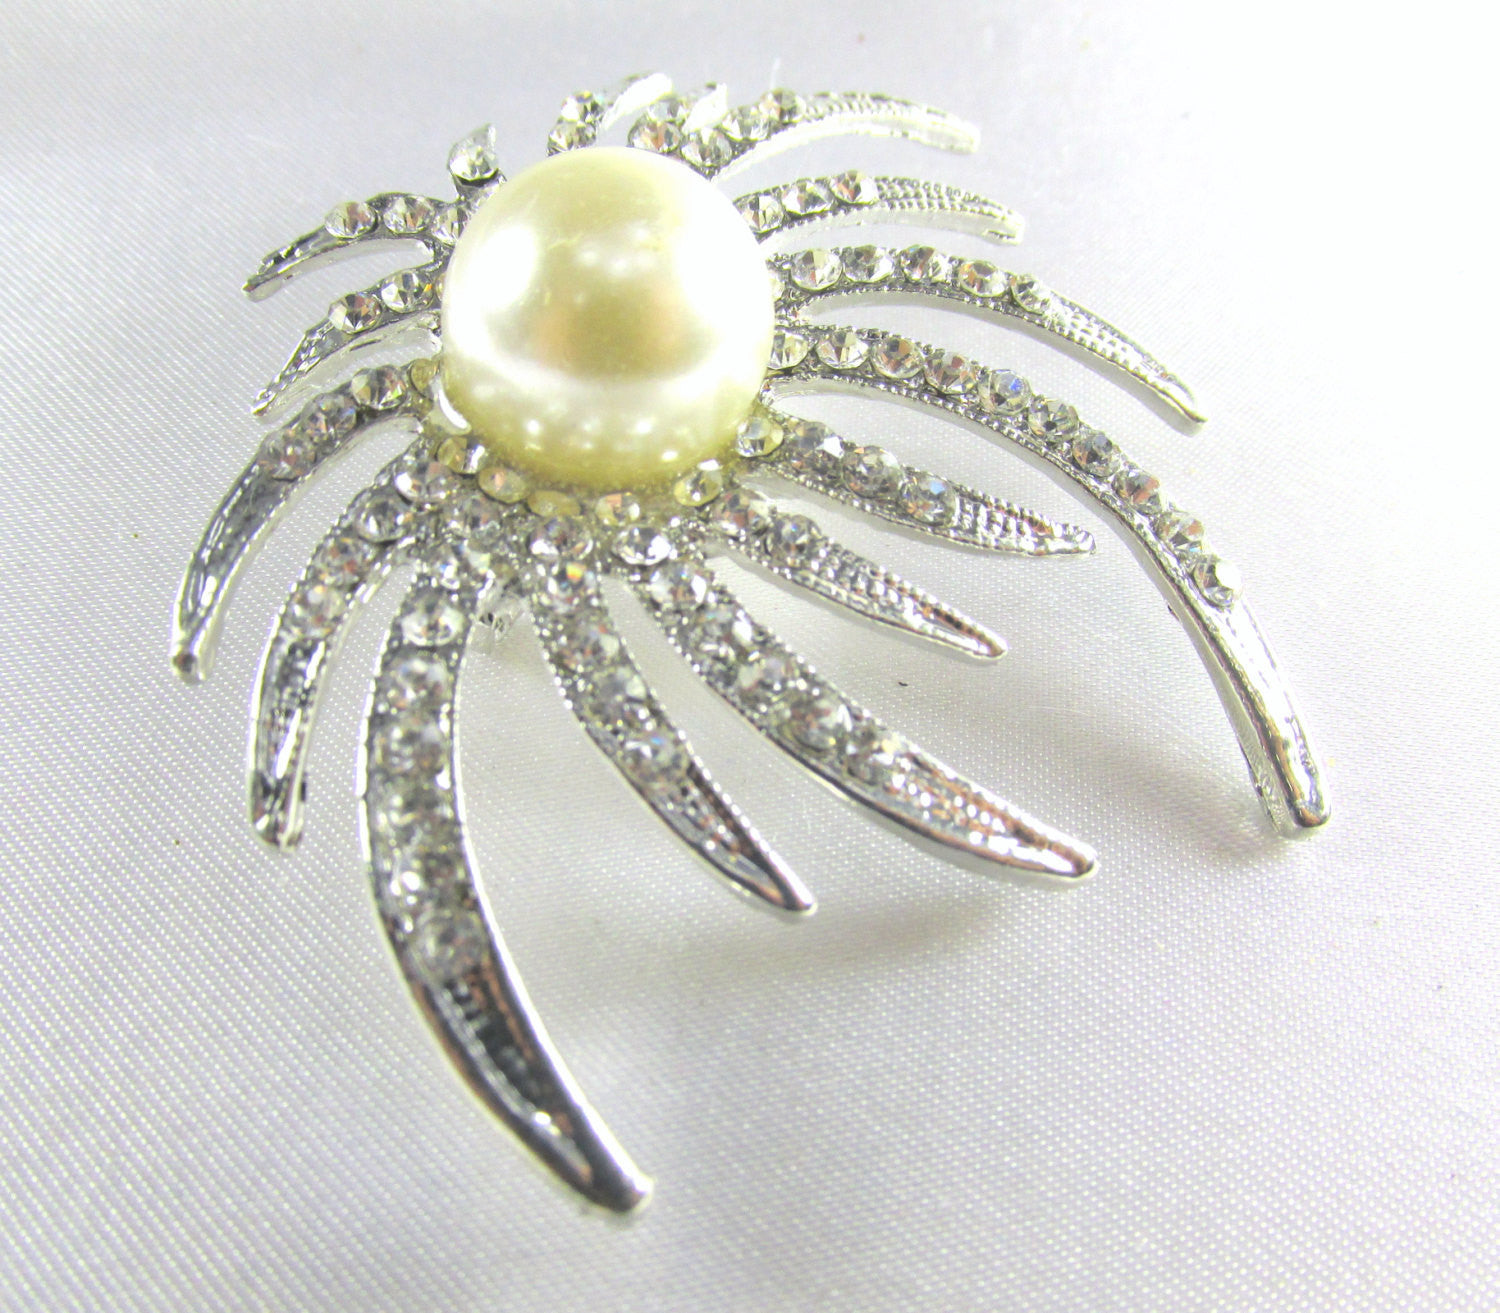 Silver Ivory White Pearl and Crystal Sunburst Brooch - Odyssey Cache - 1